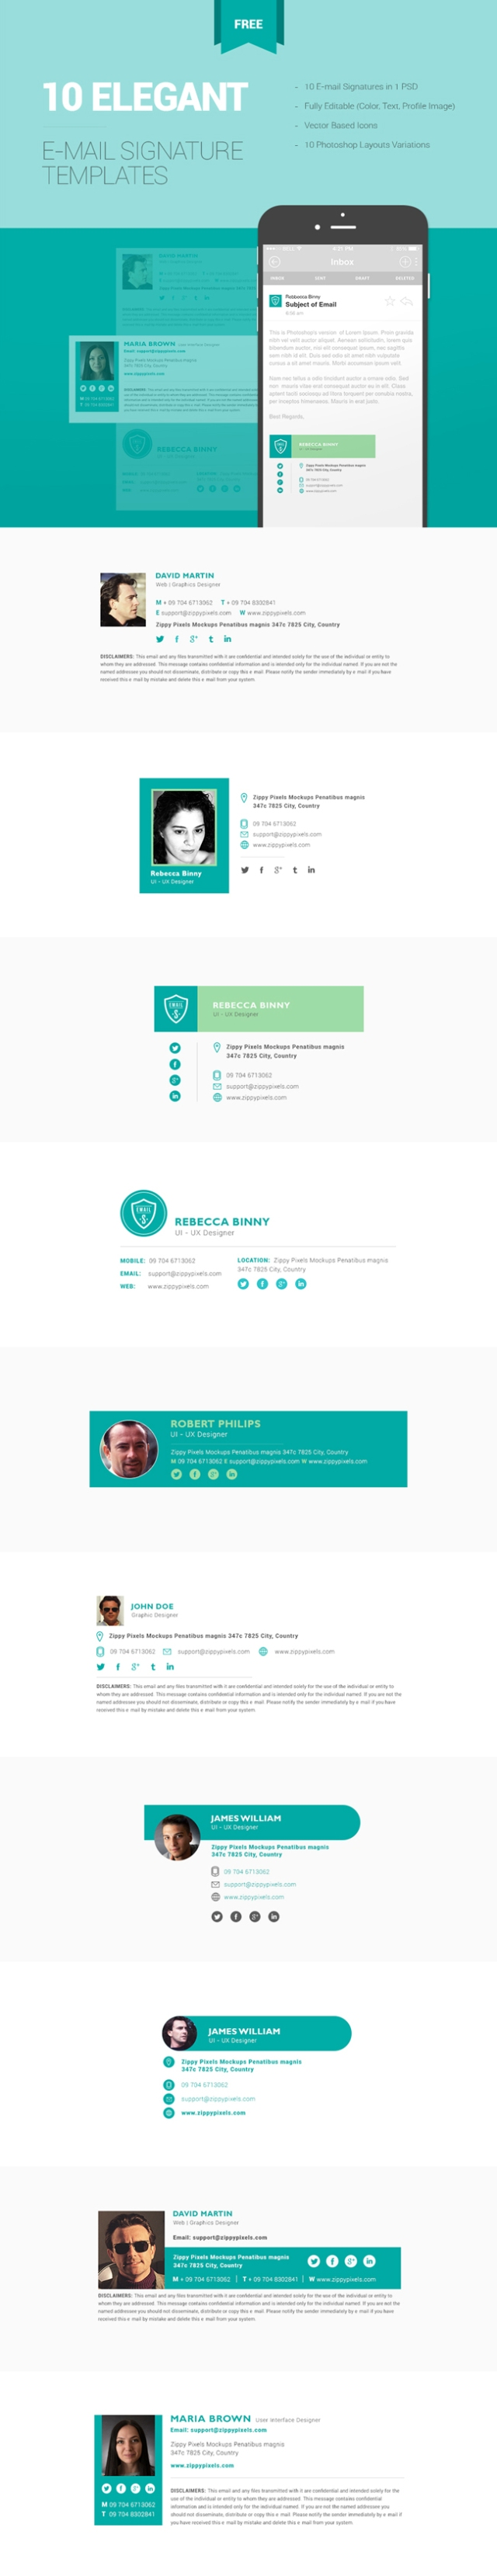 Free-email-signature-templates